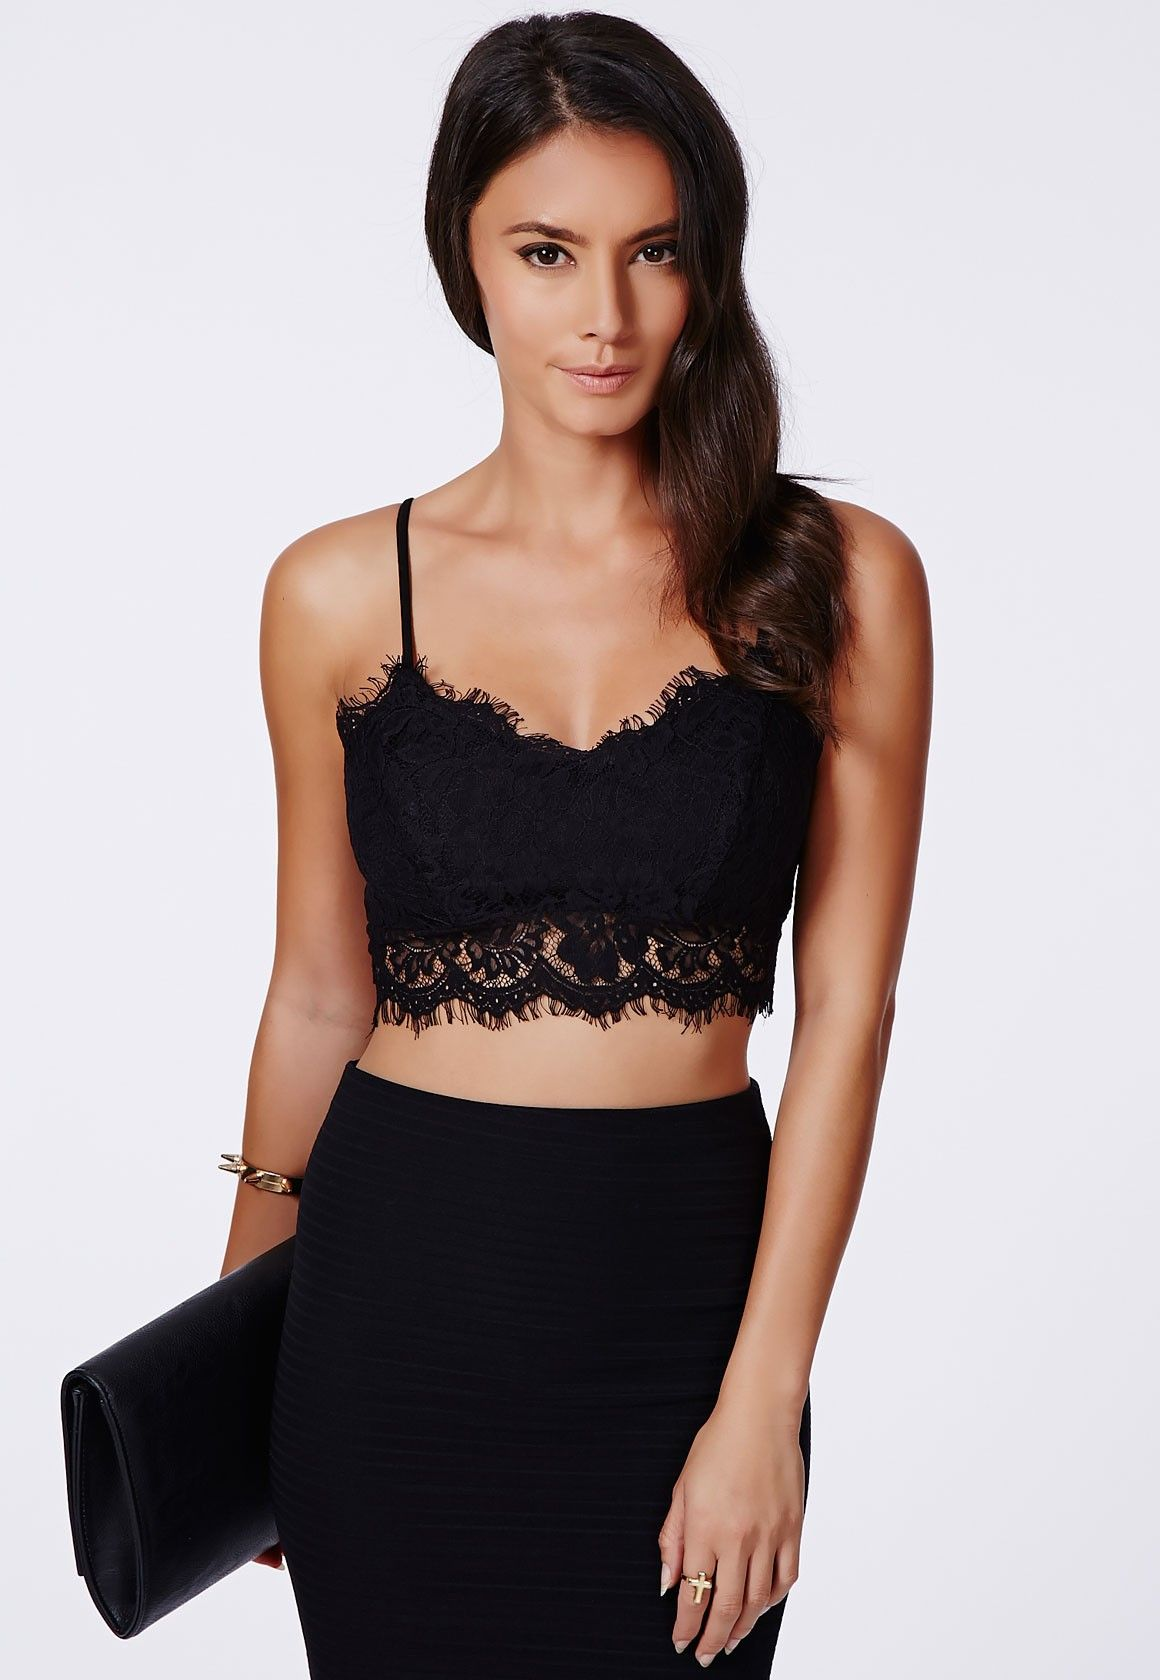 How To Style Black Lace Bralette